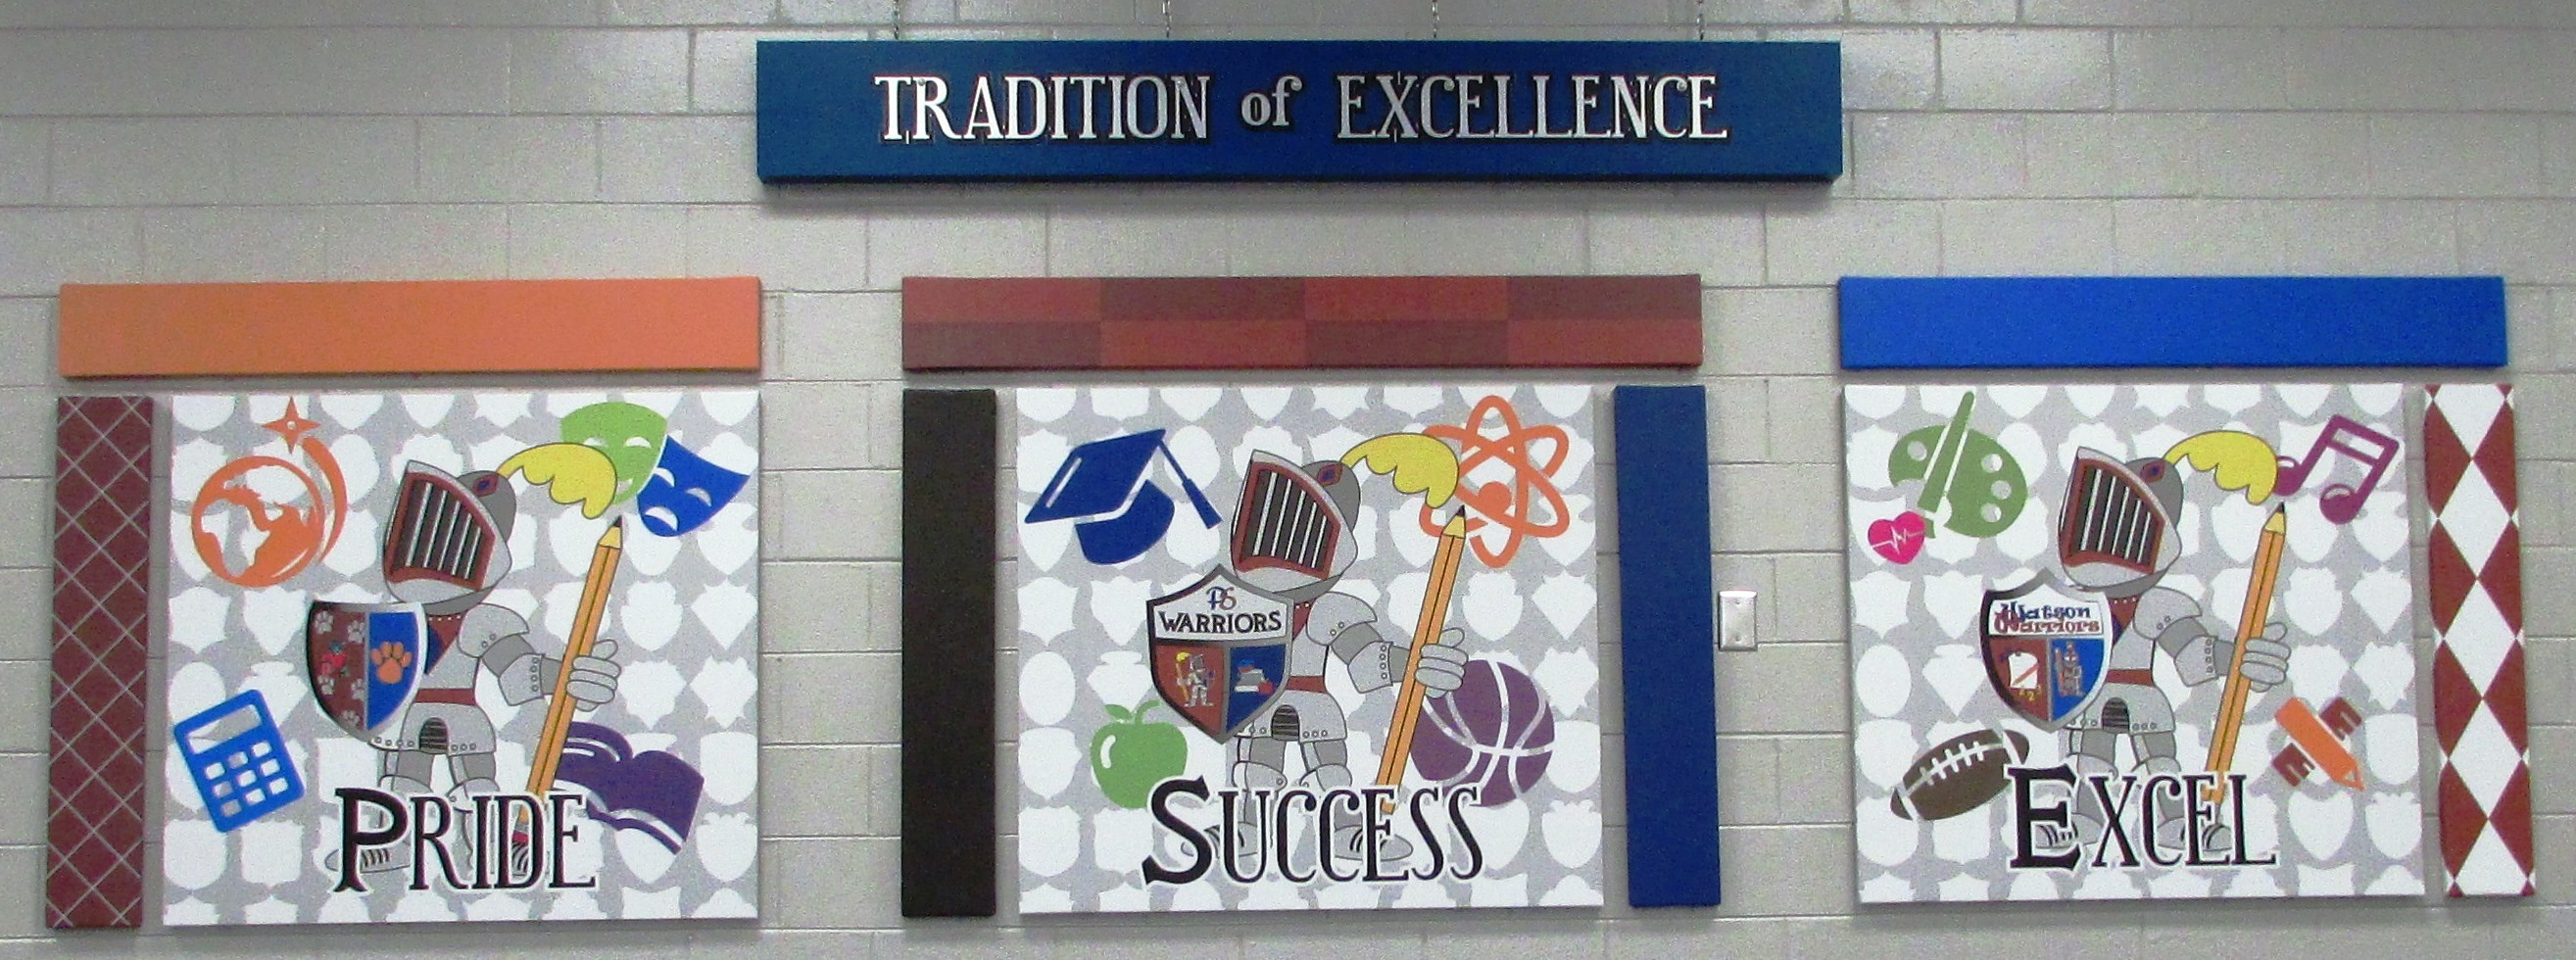 Tradition of Excellence Sign